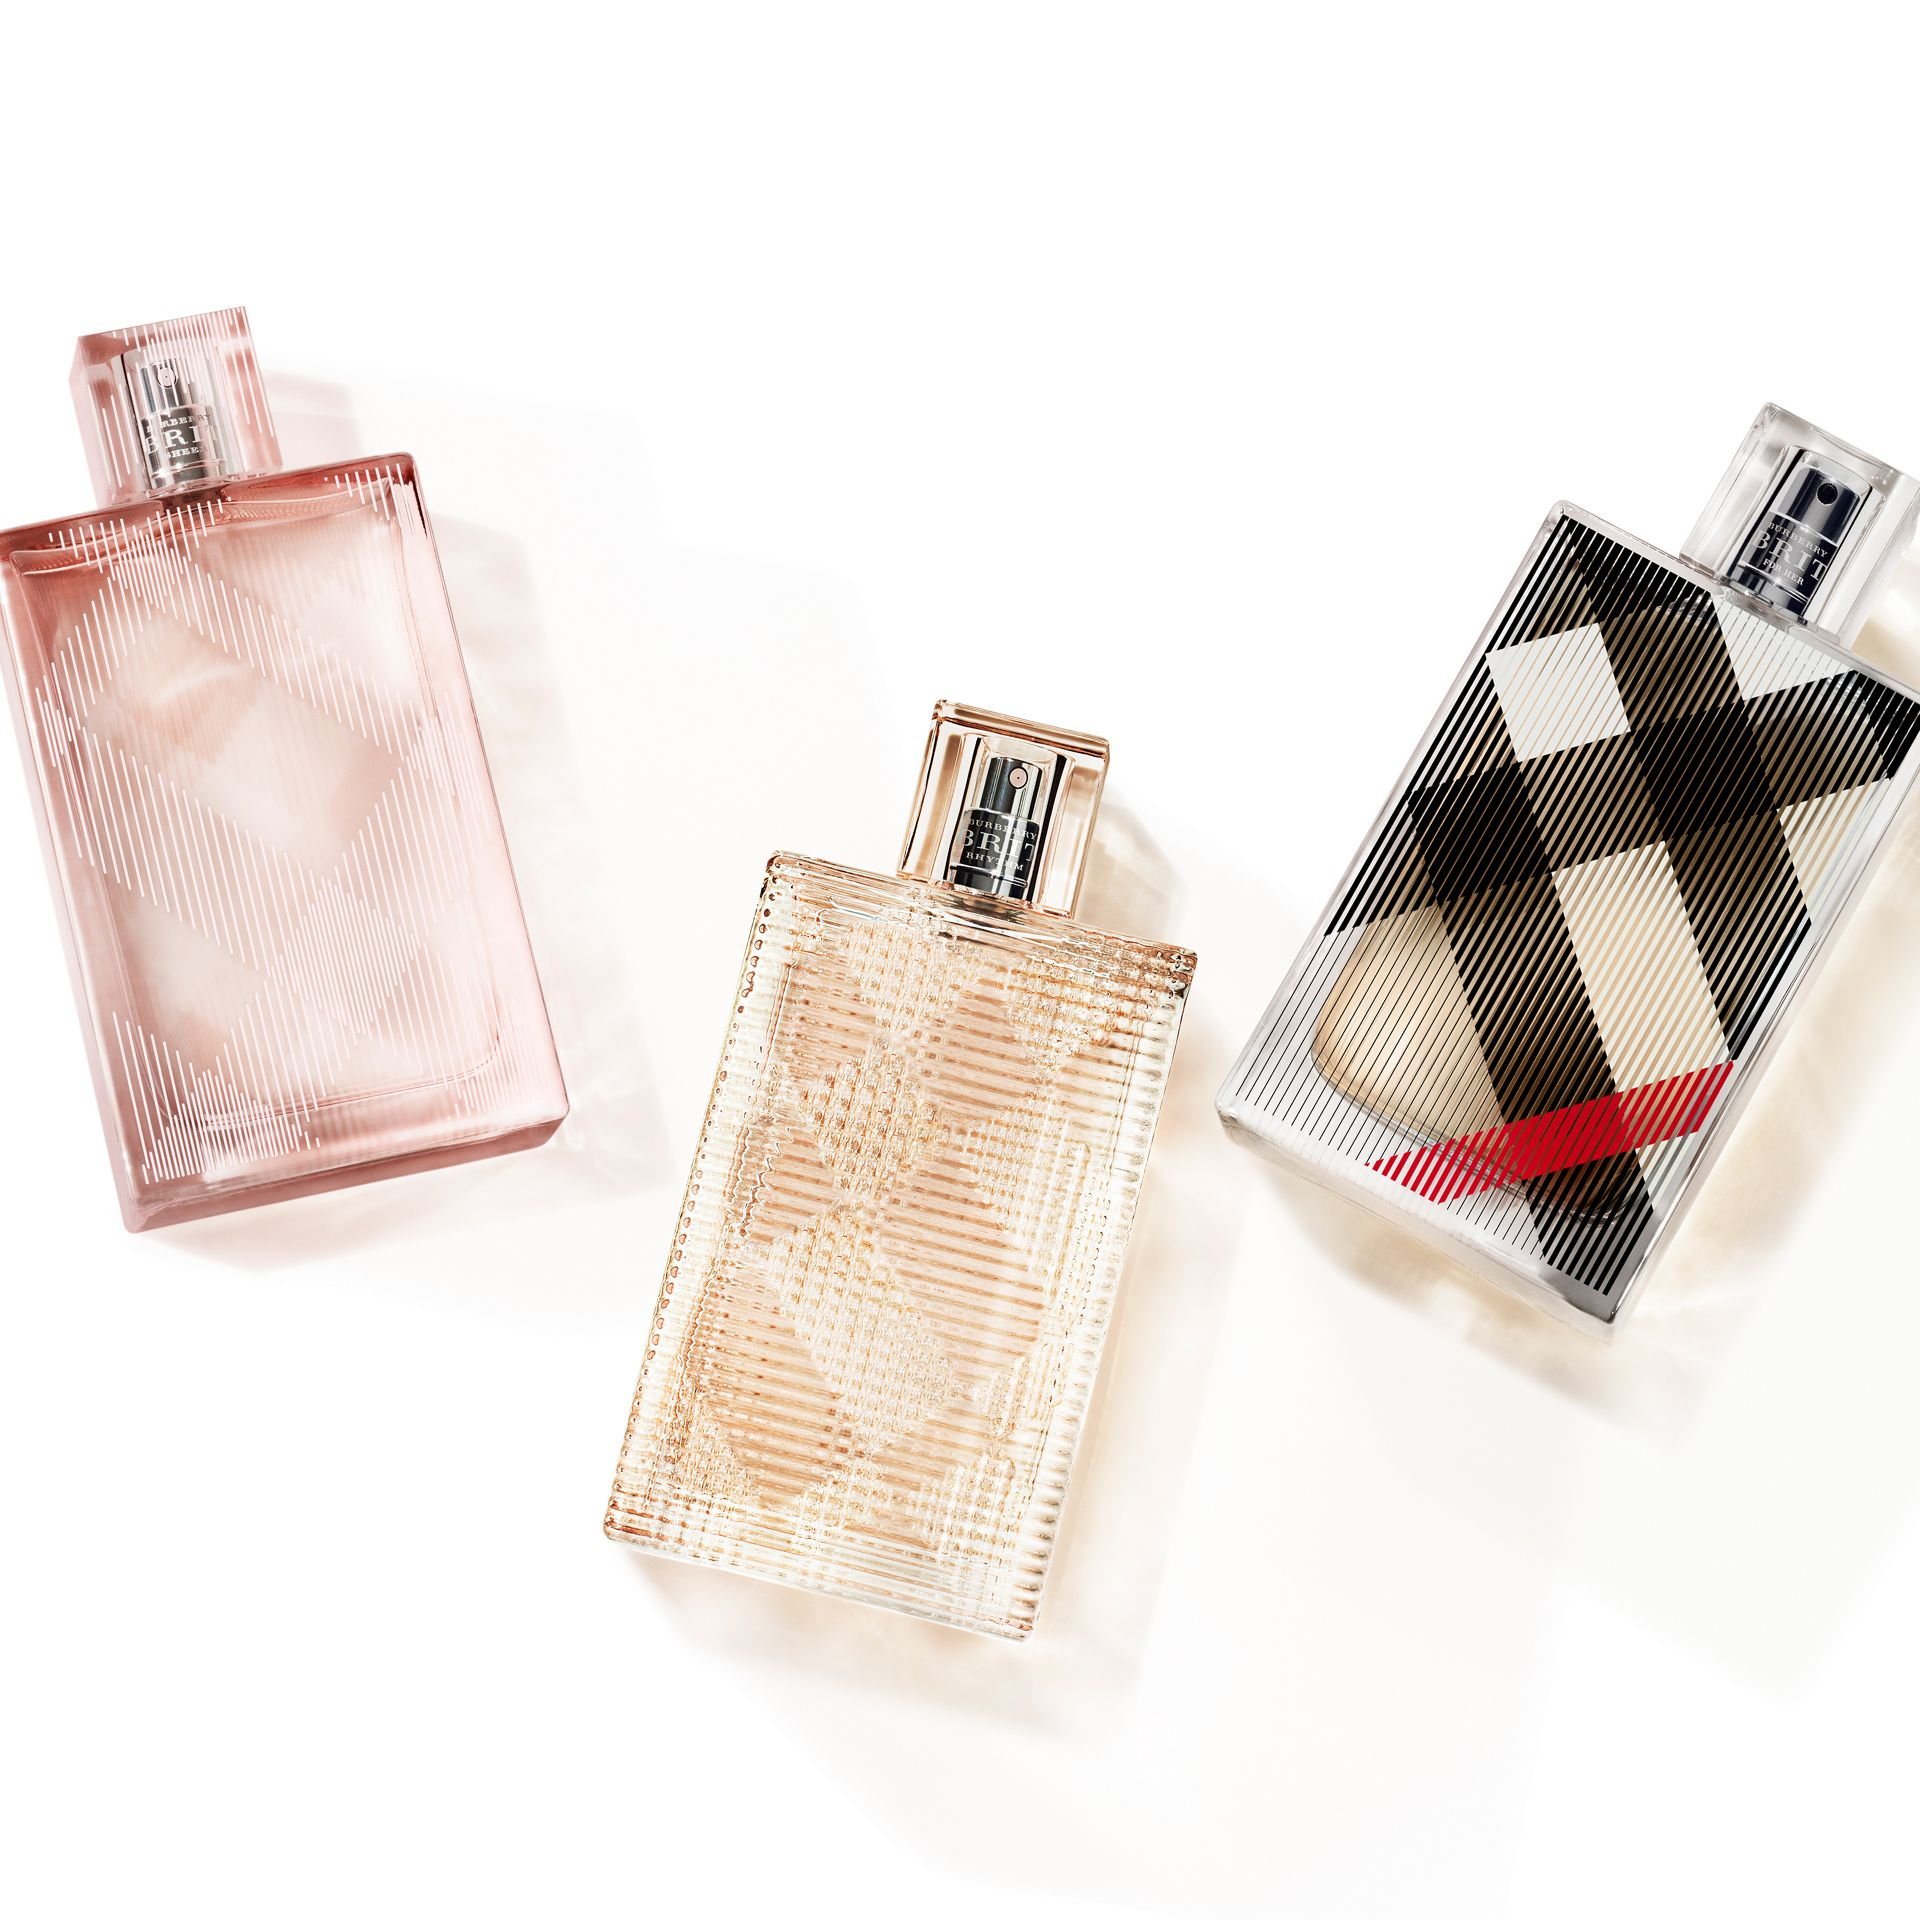 Burberry Brit For Her Eau de Toilette 100ml - Women | Burberry Hong Kong - gallery image 2